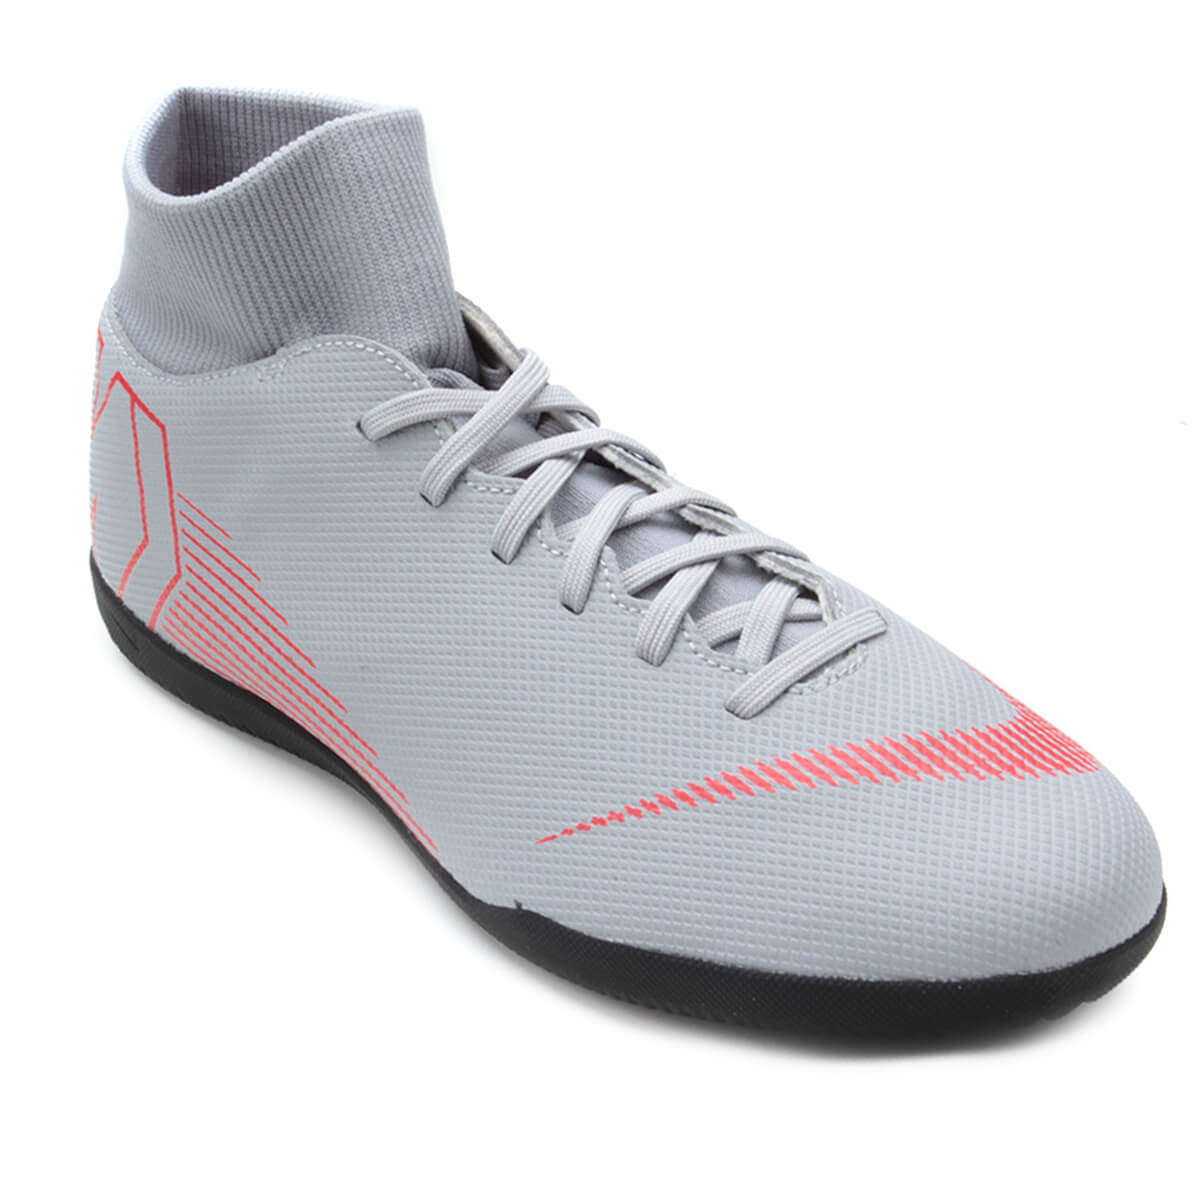 39c43e191f Chuteira Futsal Nike Mercurial Superflyx 6 Club Ic - BRACIA SHOP ...